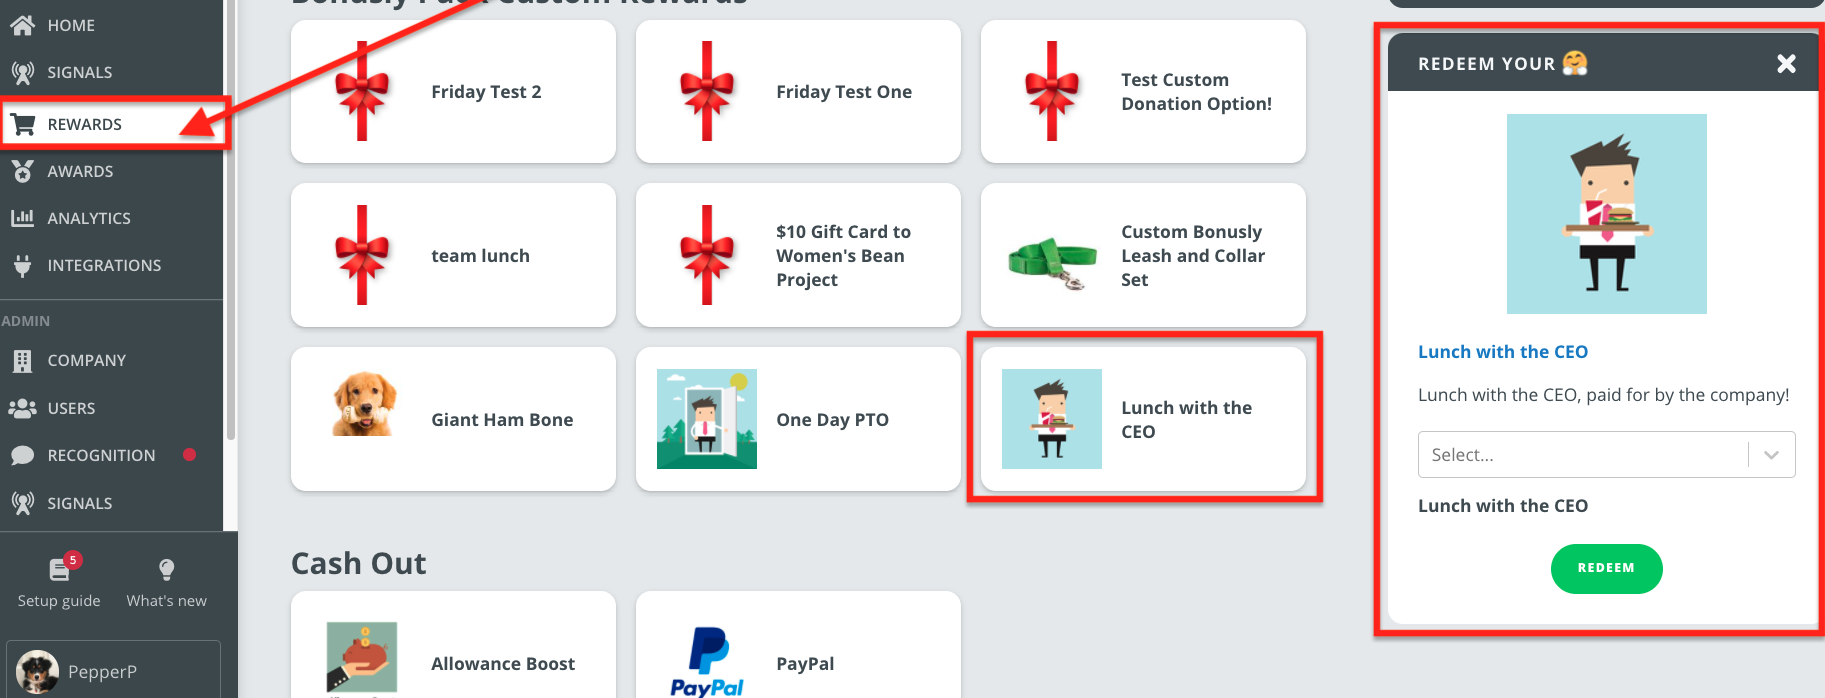 Overview of the Rewards page for users, now showing the reward with multiple cost options to redeem.